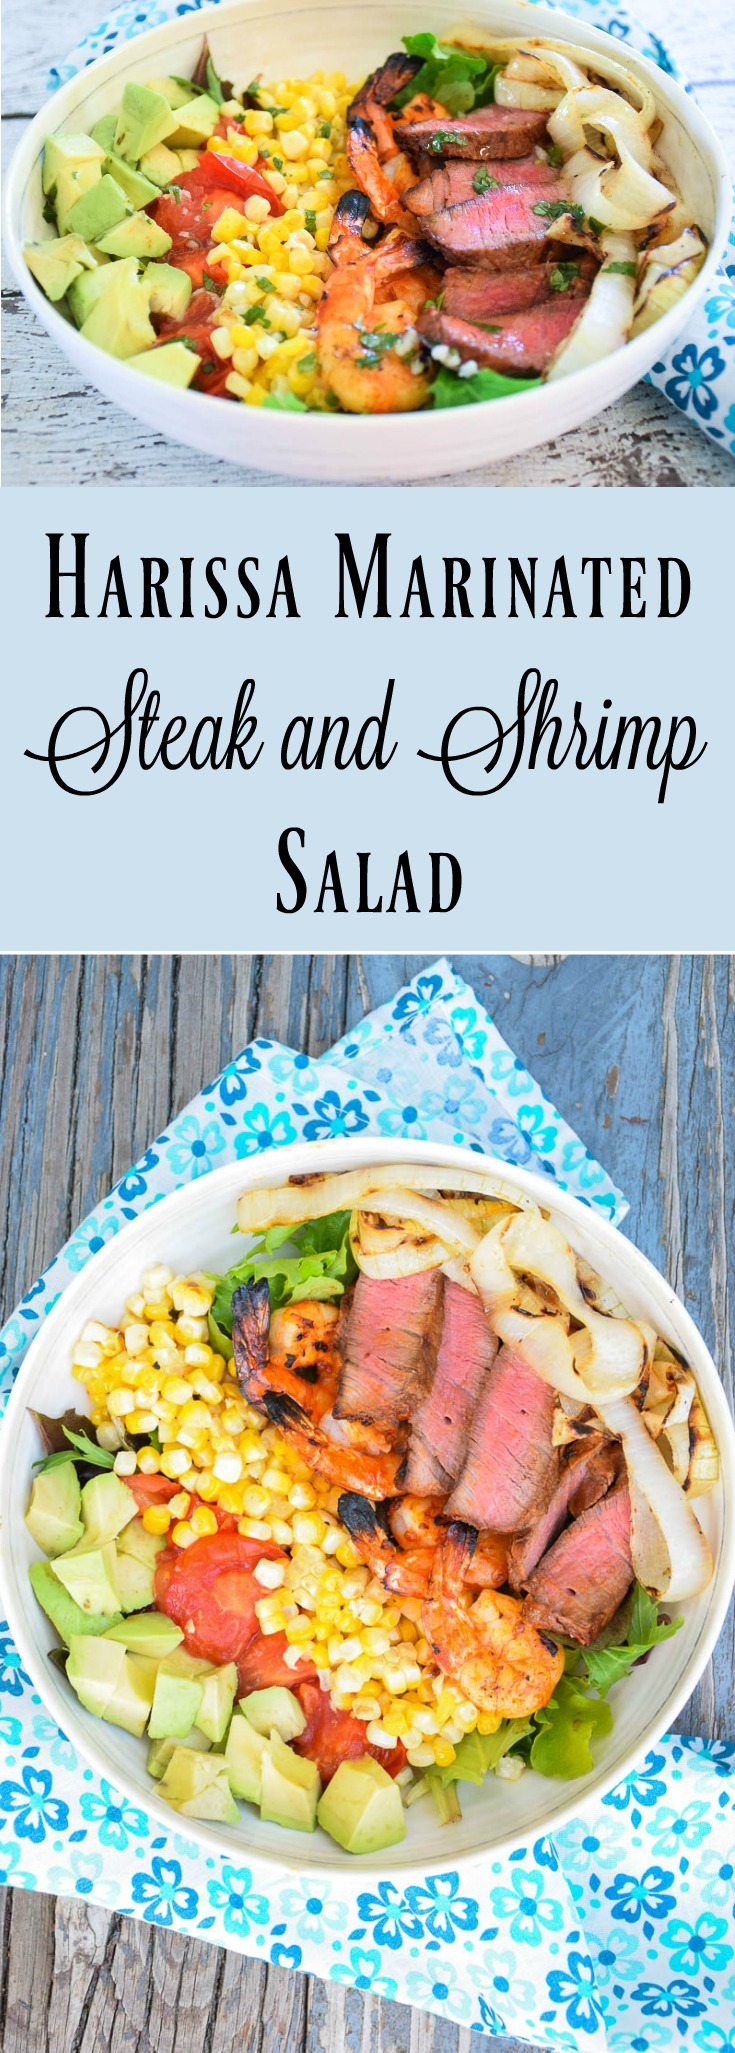 Harissa Marinated Steak And Shrimp Salad With Cilantro Lime Dressing Grumpy S Honeybunch